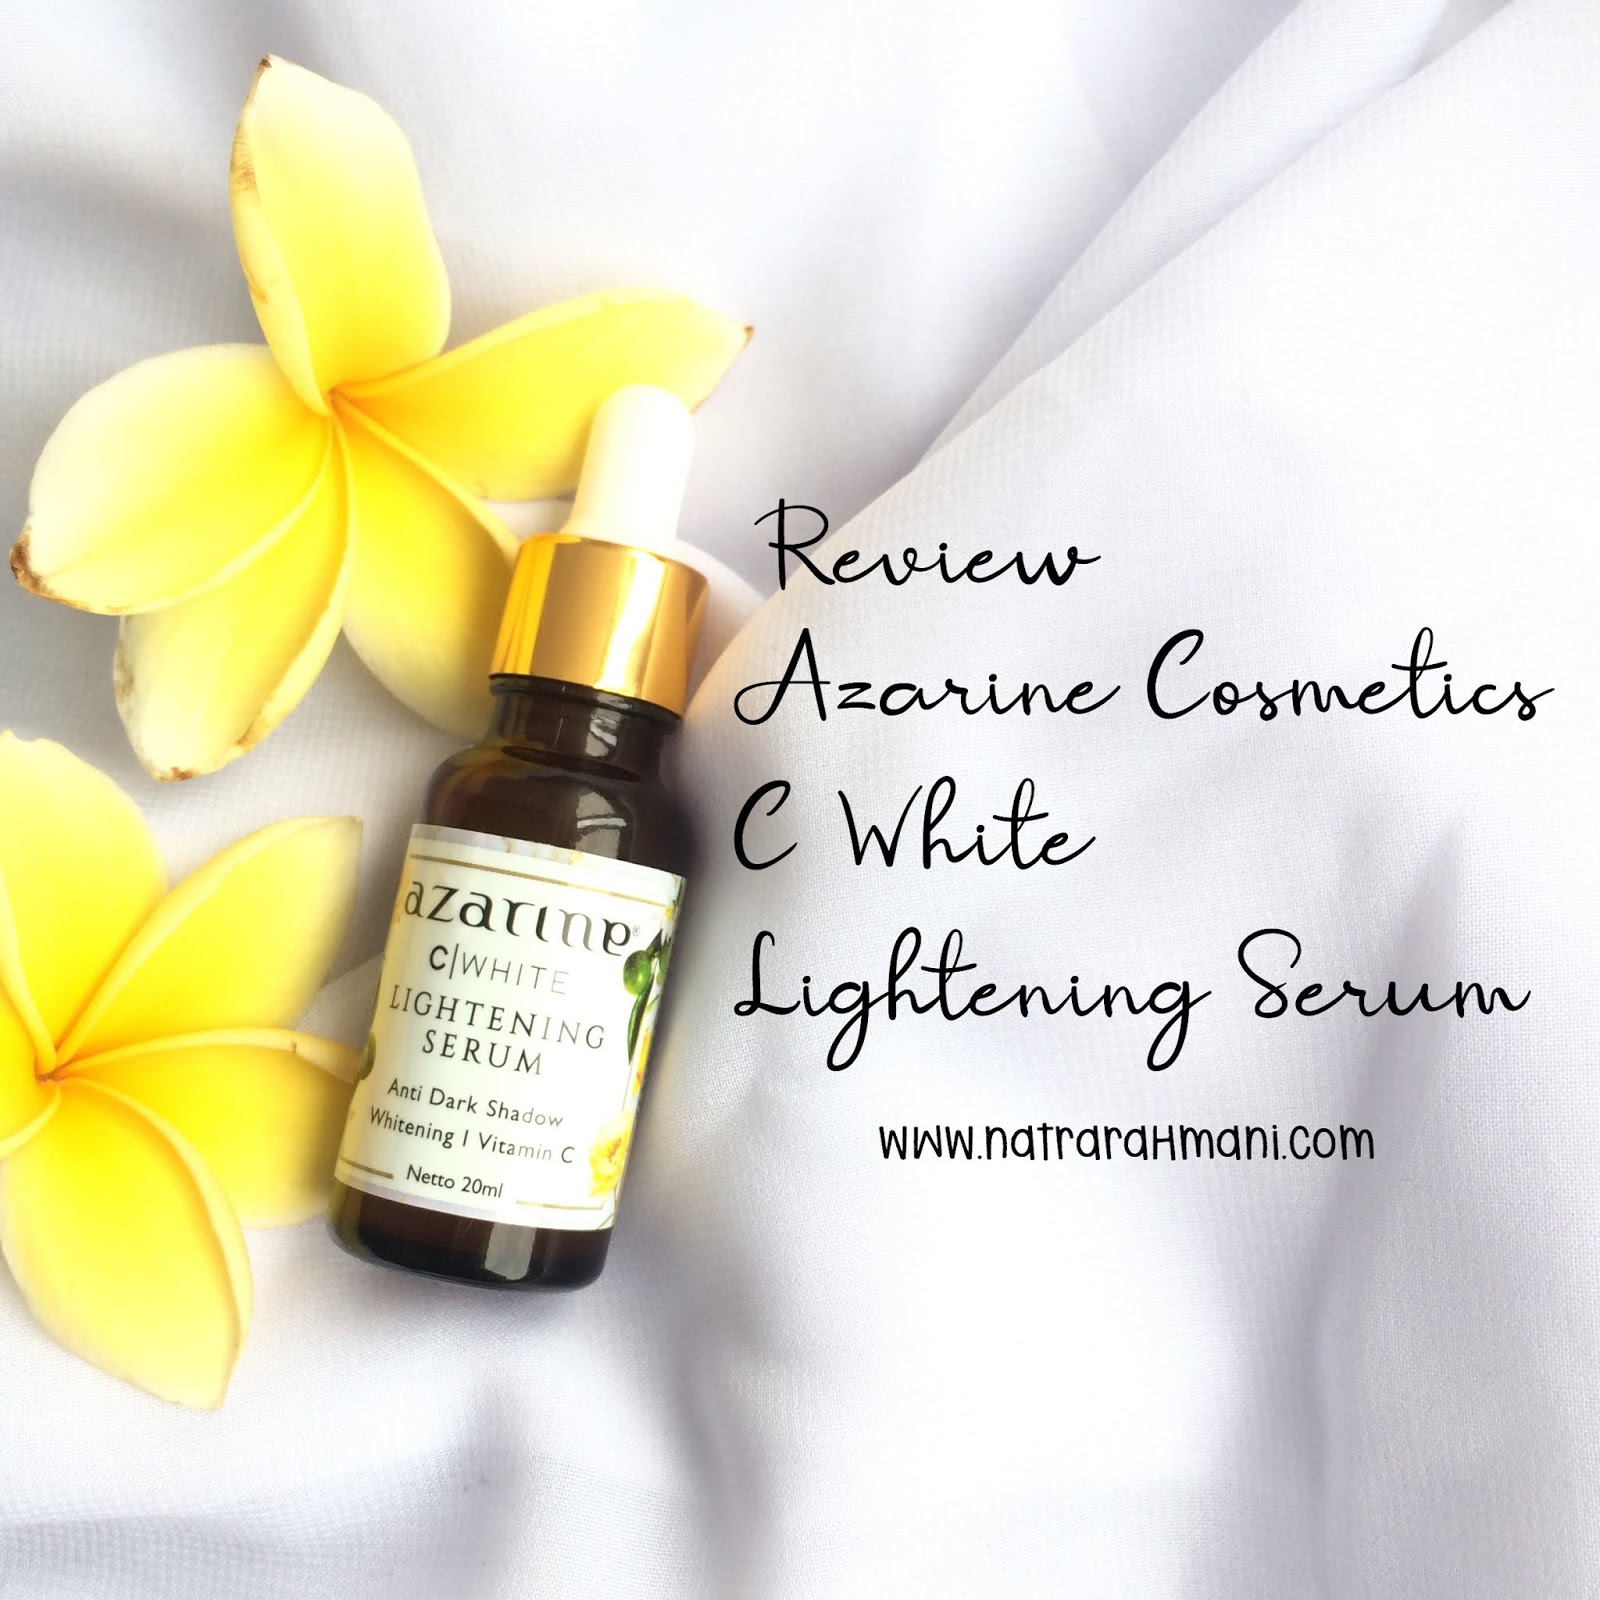 review-azarine-cosmetics-c-white-lightening-serum